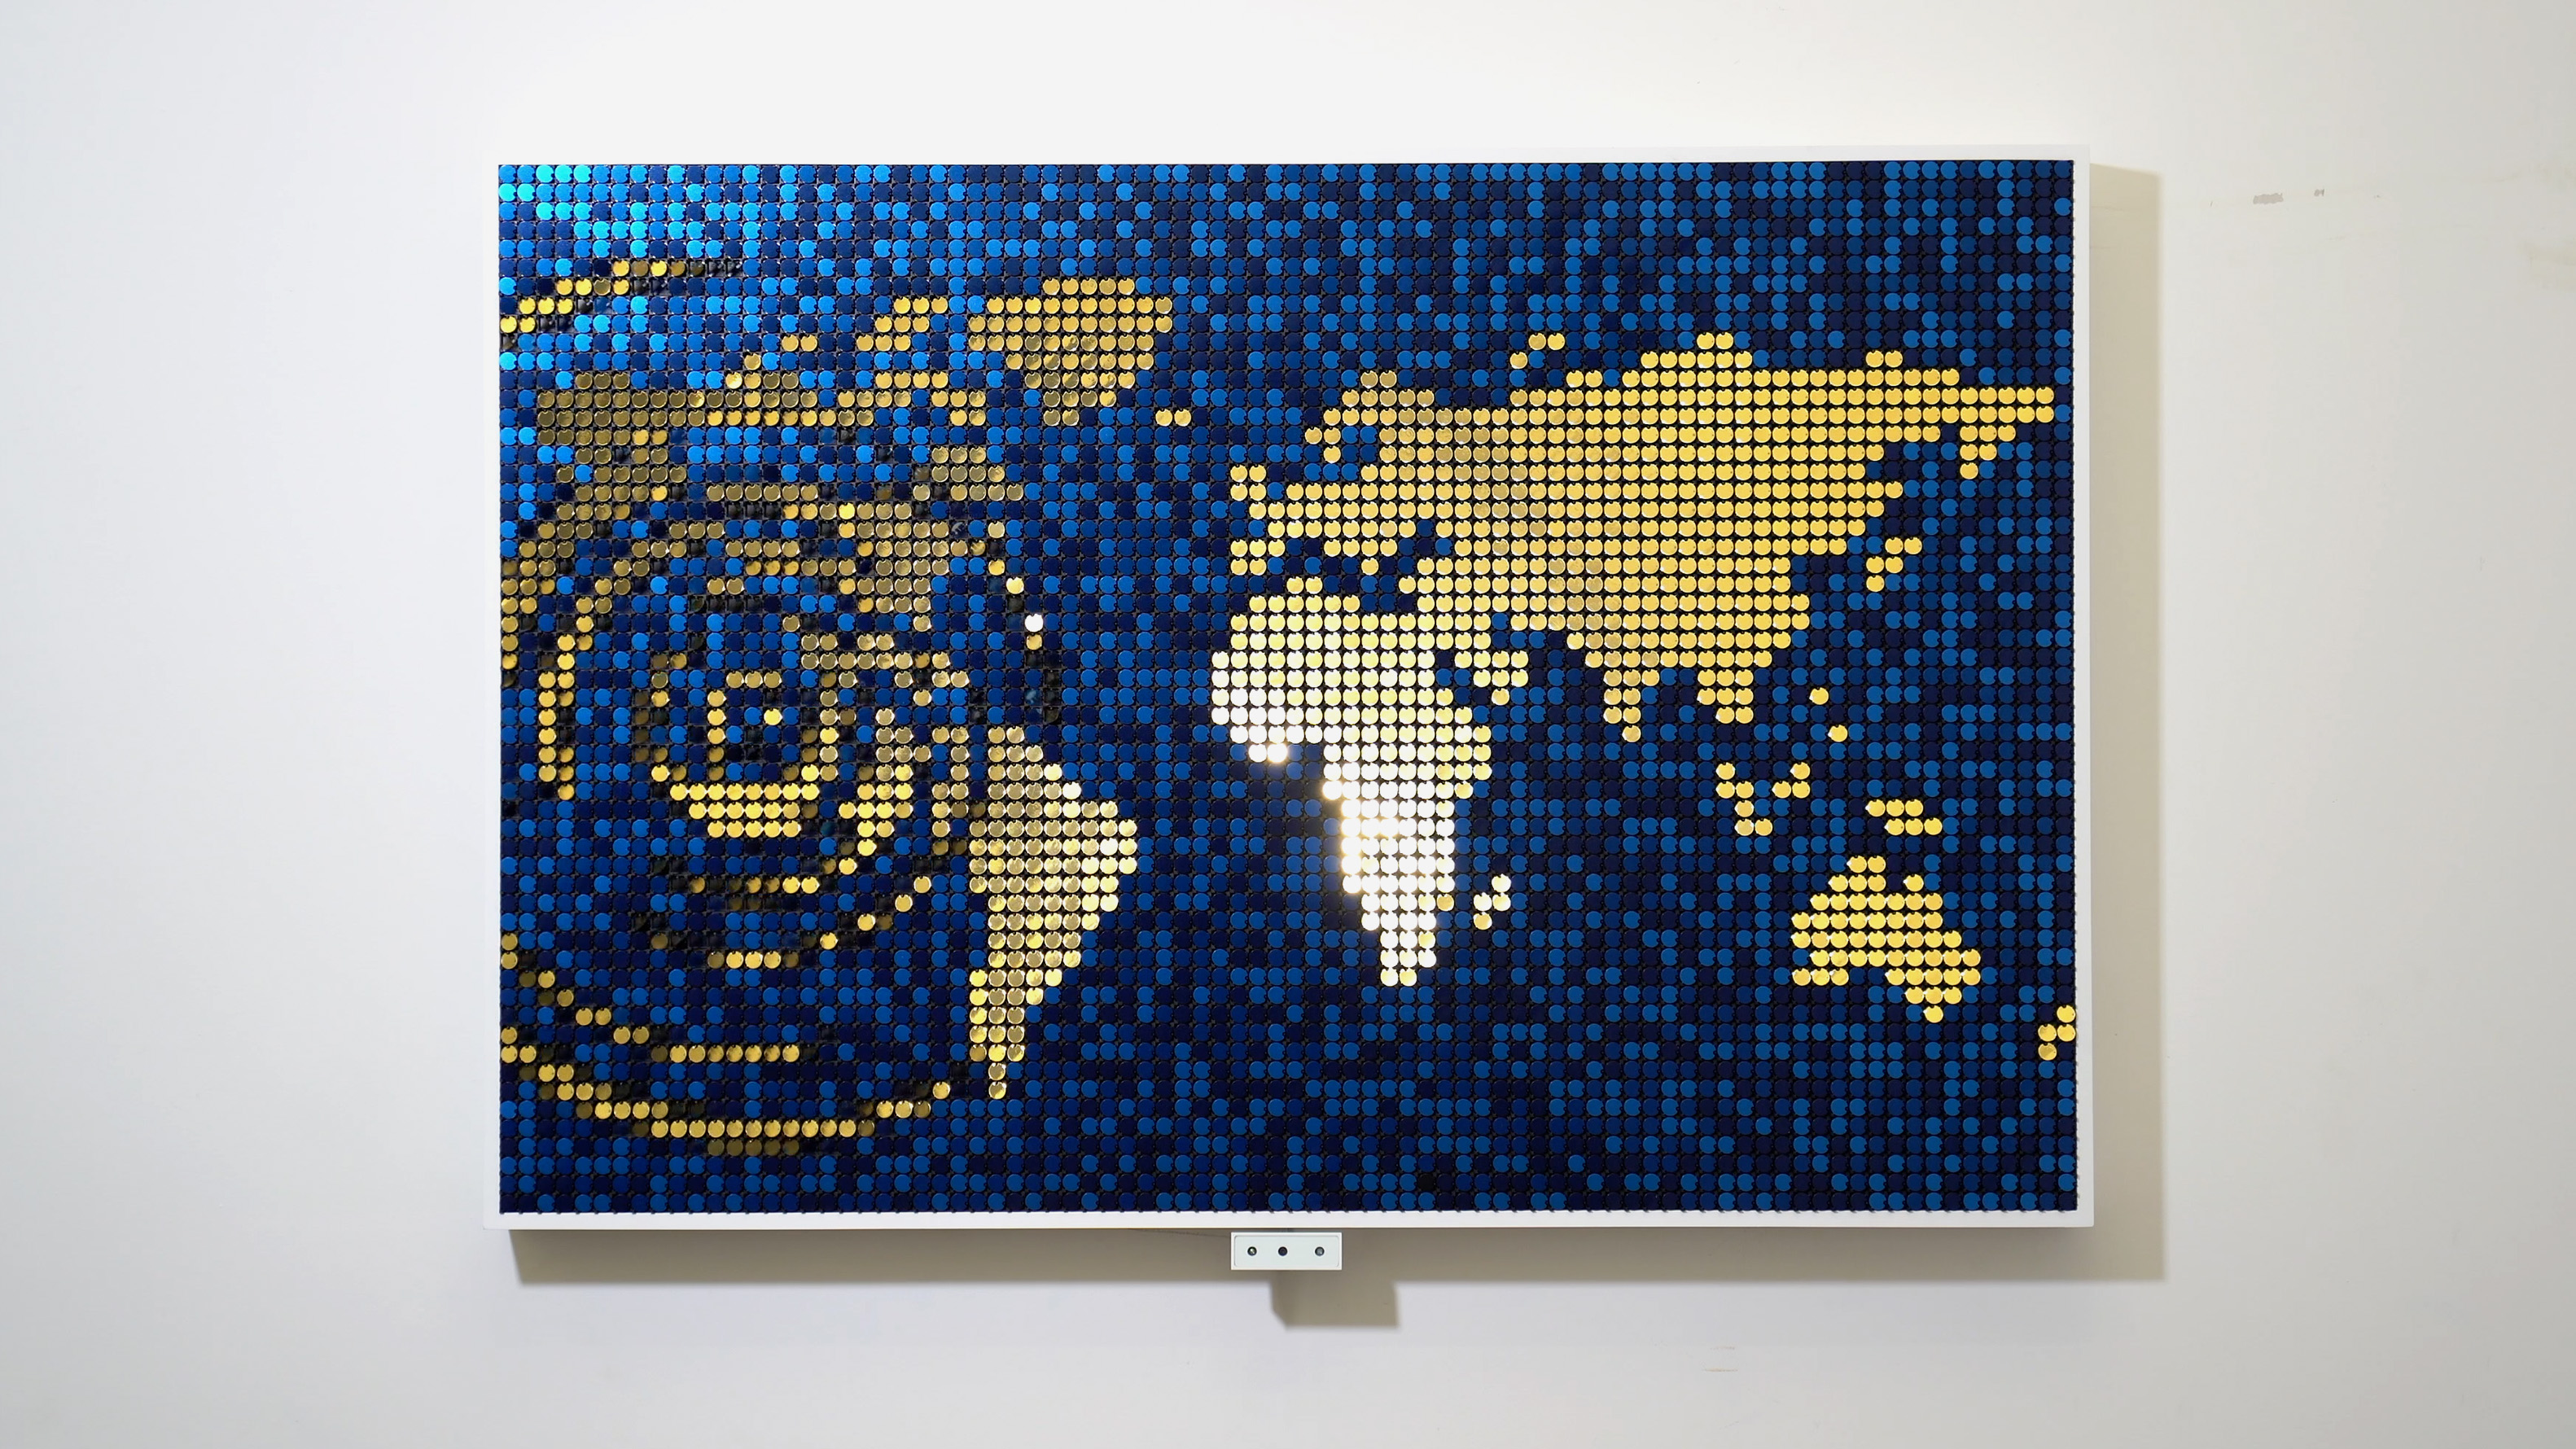 Blue and gold Flip-Discs artwork called Seismic Echo showing a map with real-time seismic activity overlaid. Created by BREAKFAST.